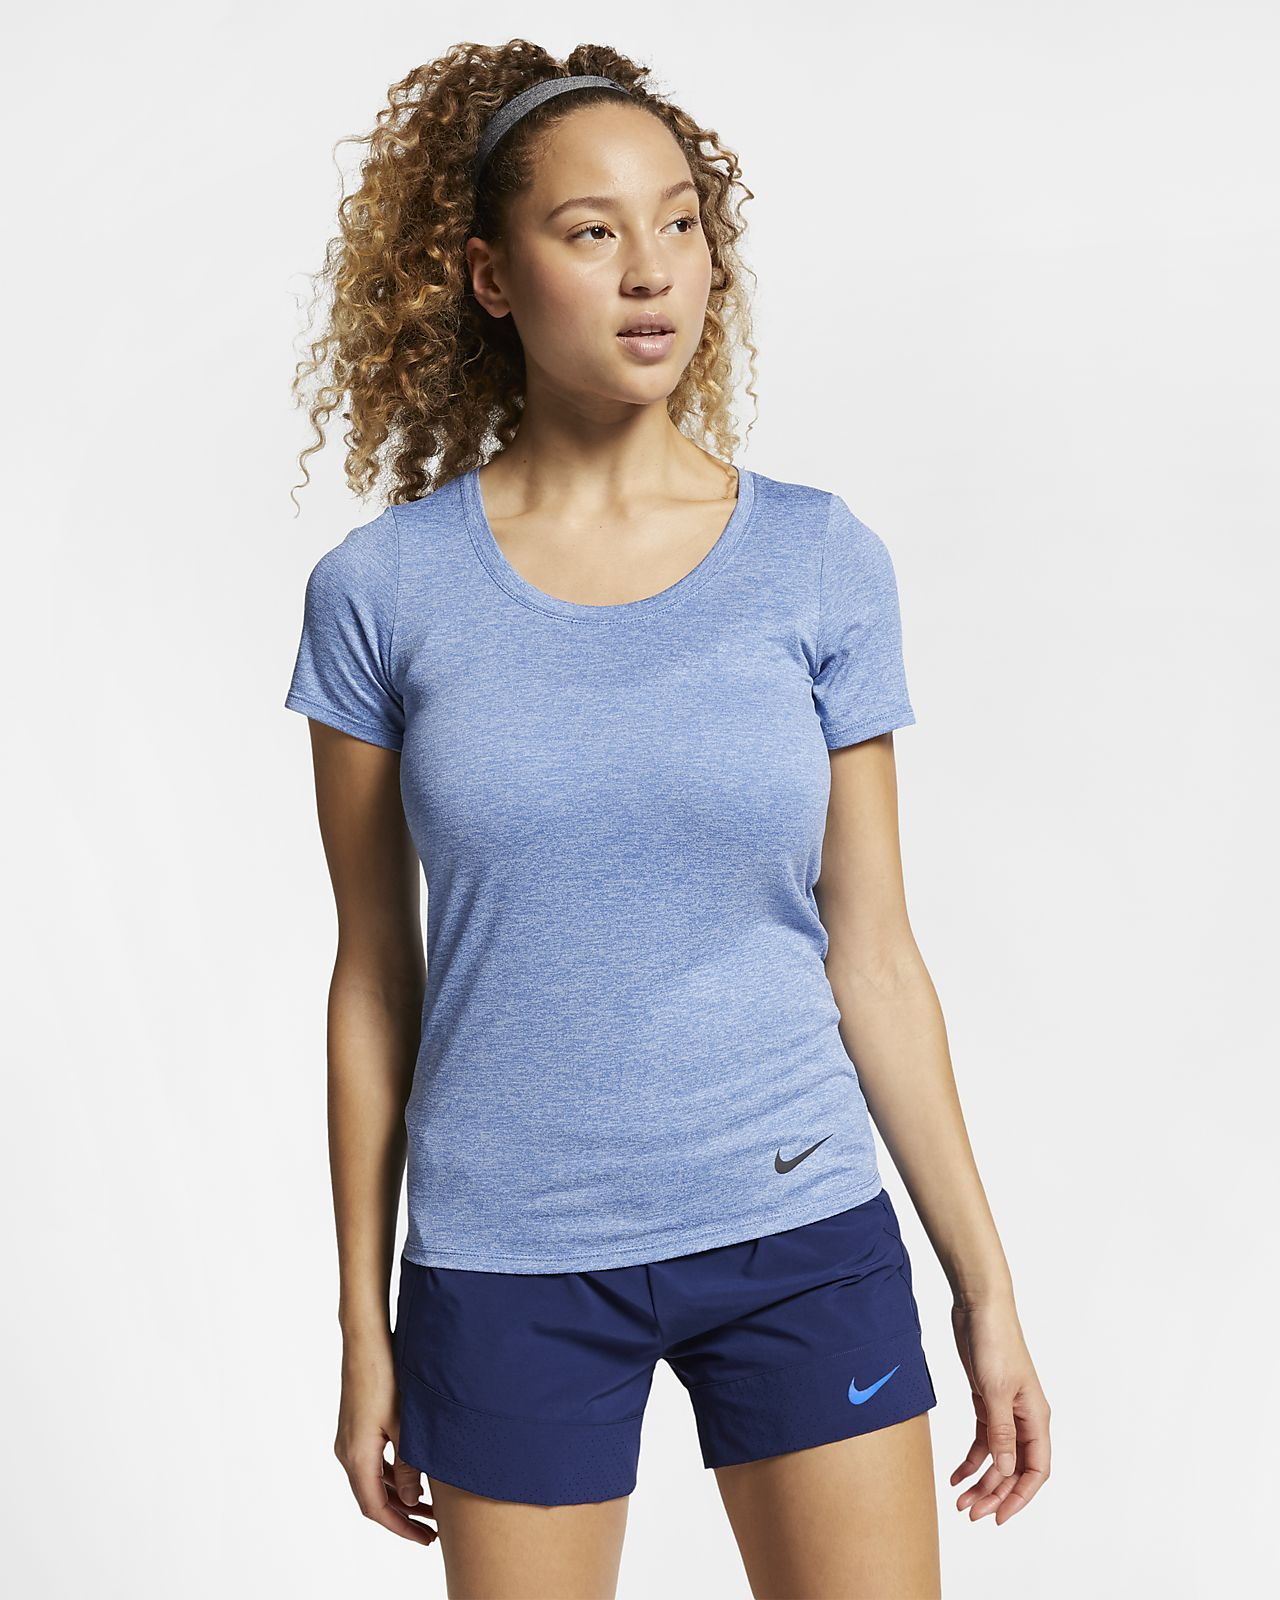 Women's Training T-Shirt. Nike Dry